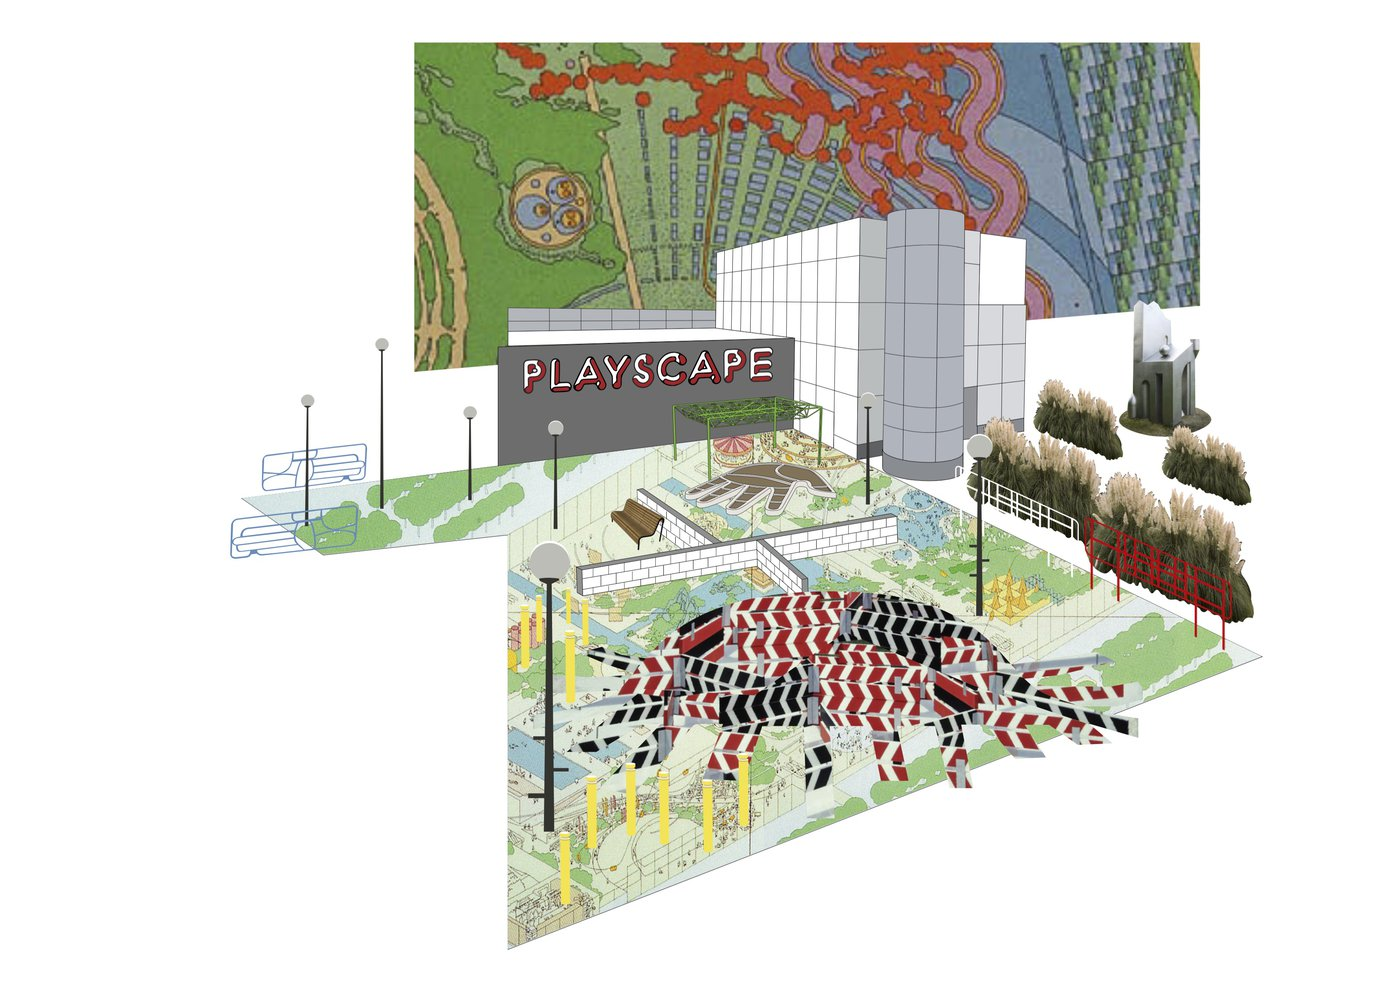 Proposal for Playscape next to MK Gallery